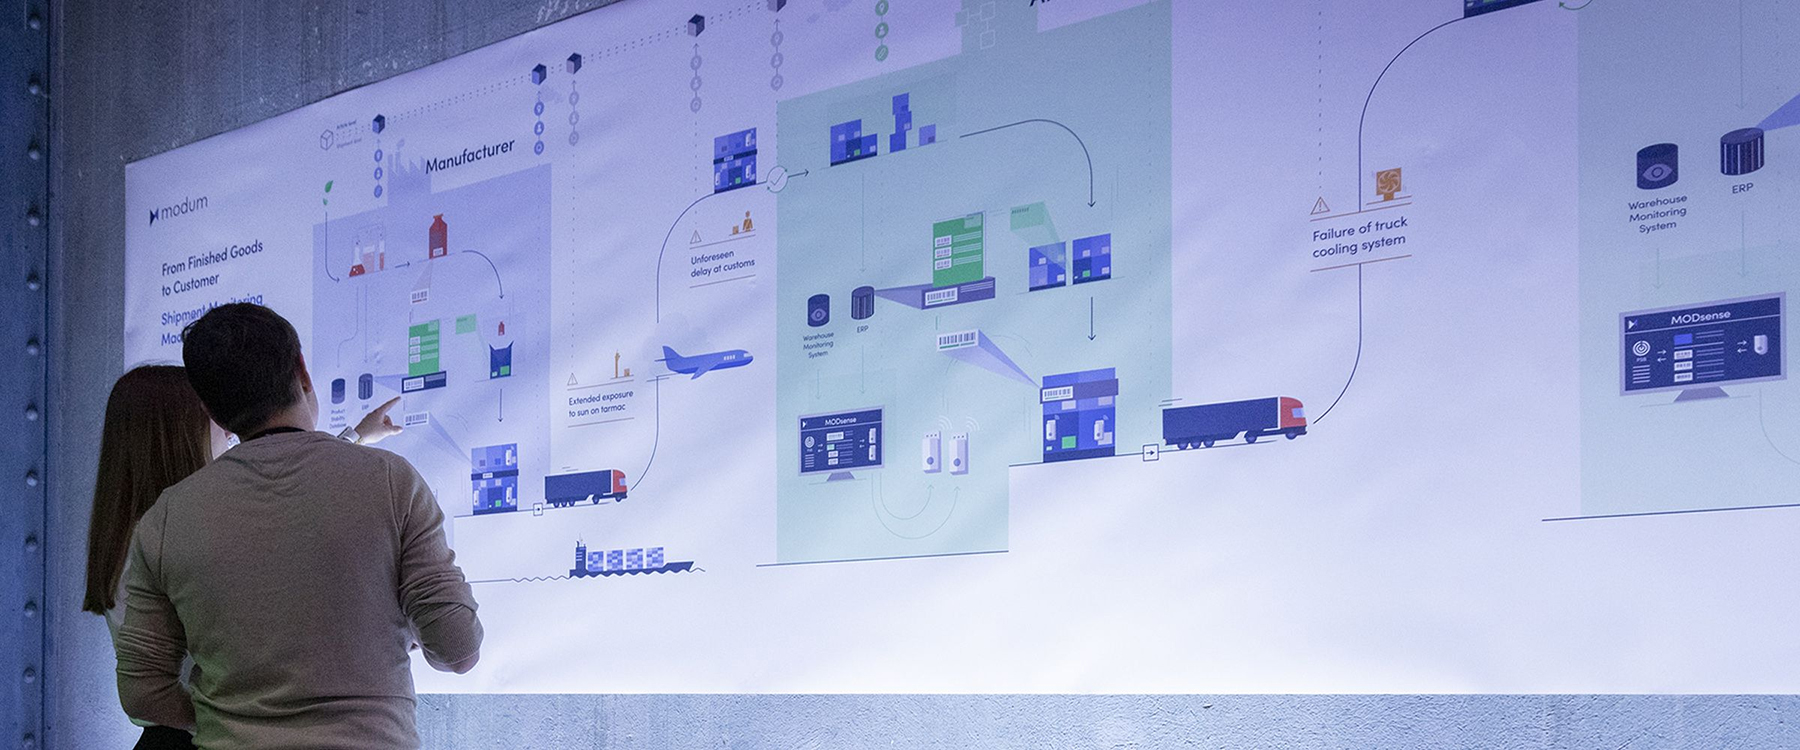 Photo of an infographic poster showing the journey of a parcel from factory to end customer